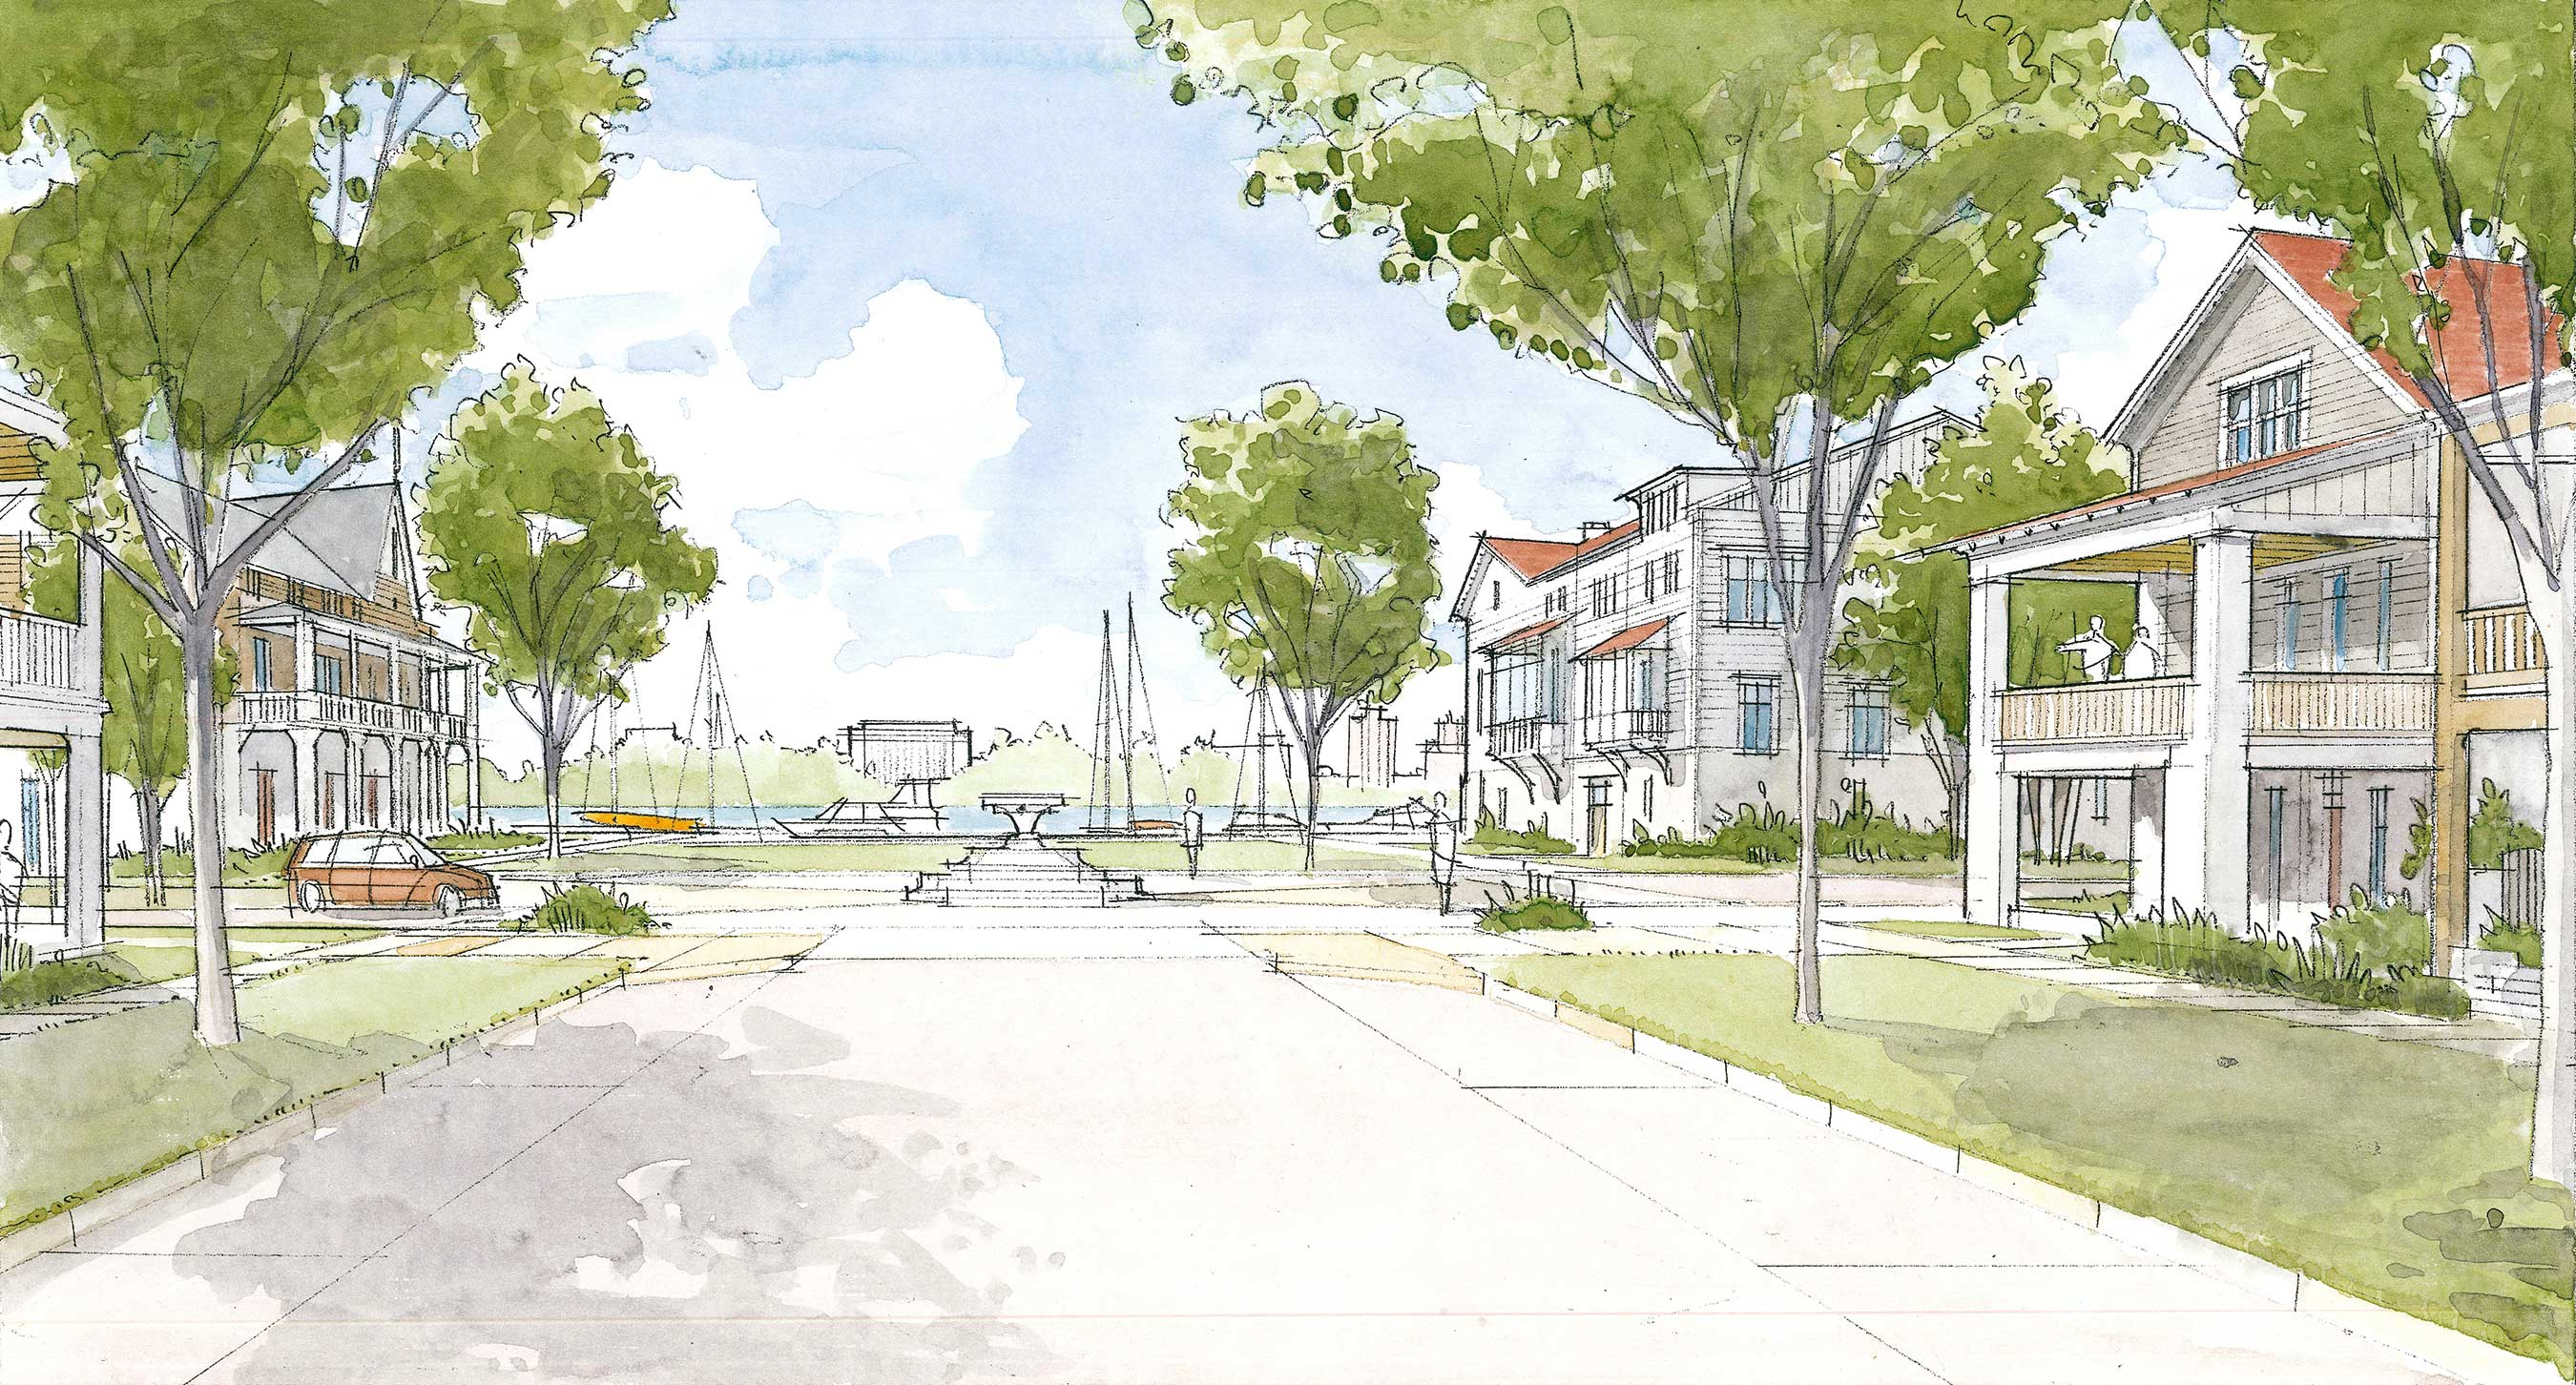 Harbor Village has been designed to foster a strong sense of community among residents, with deliberate interaction between the houses and streets, inviting front porches, and tree lined streets.